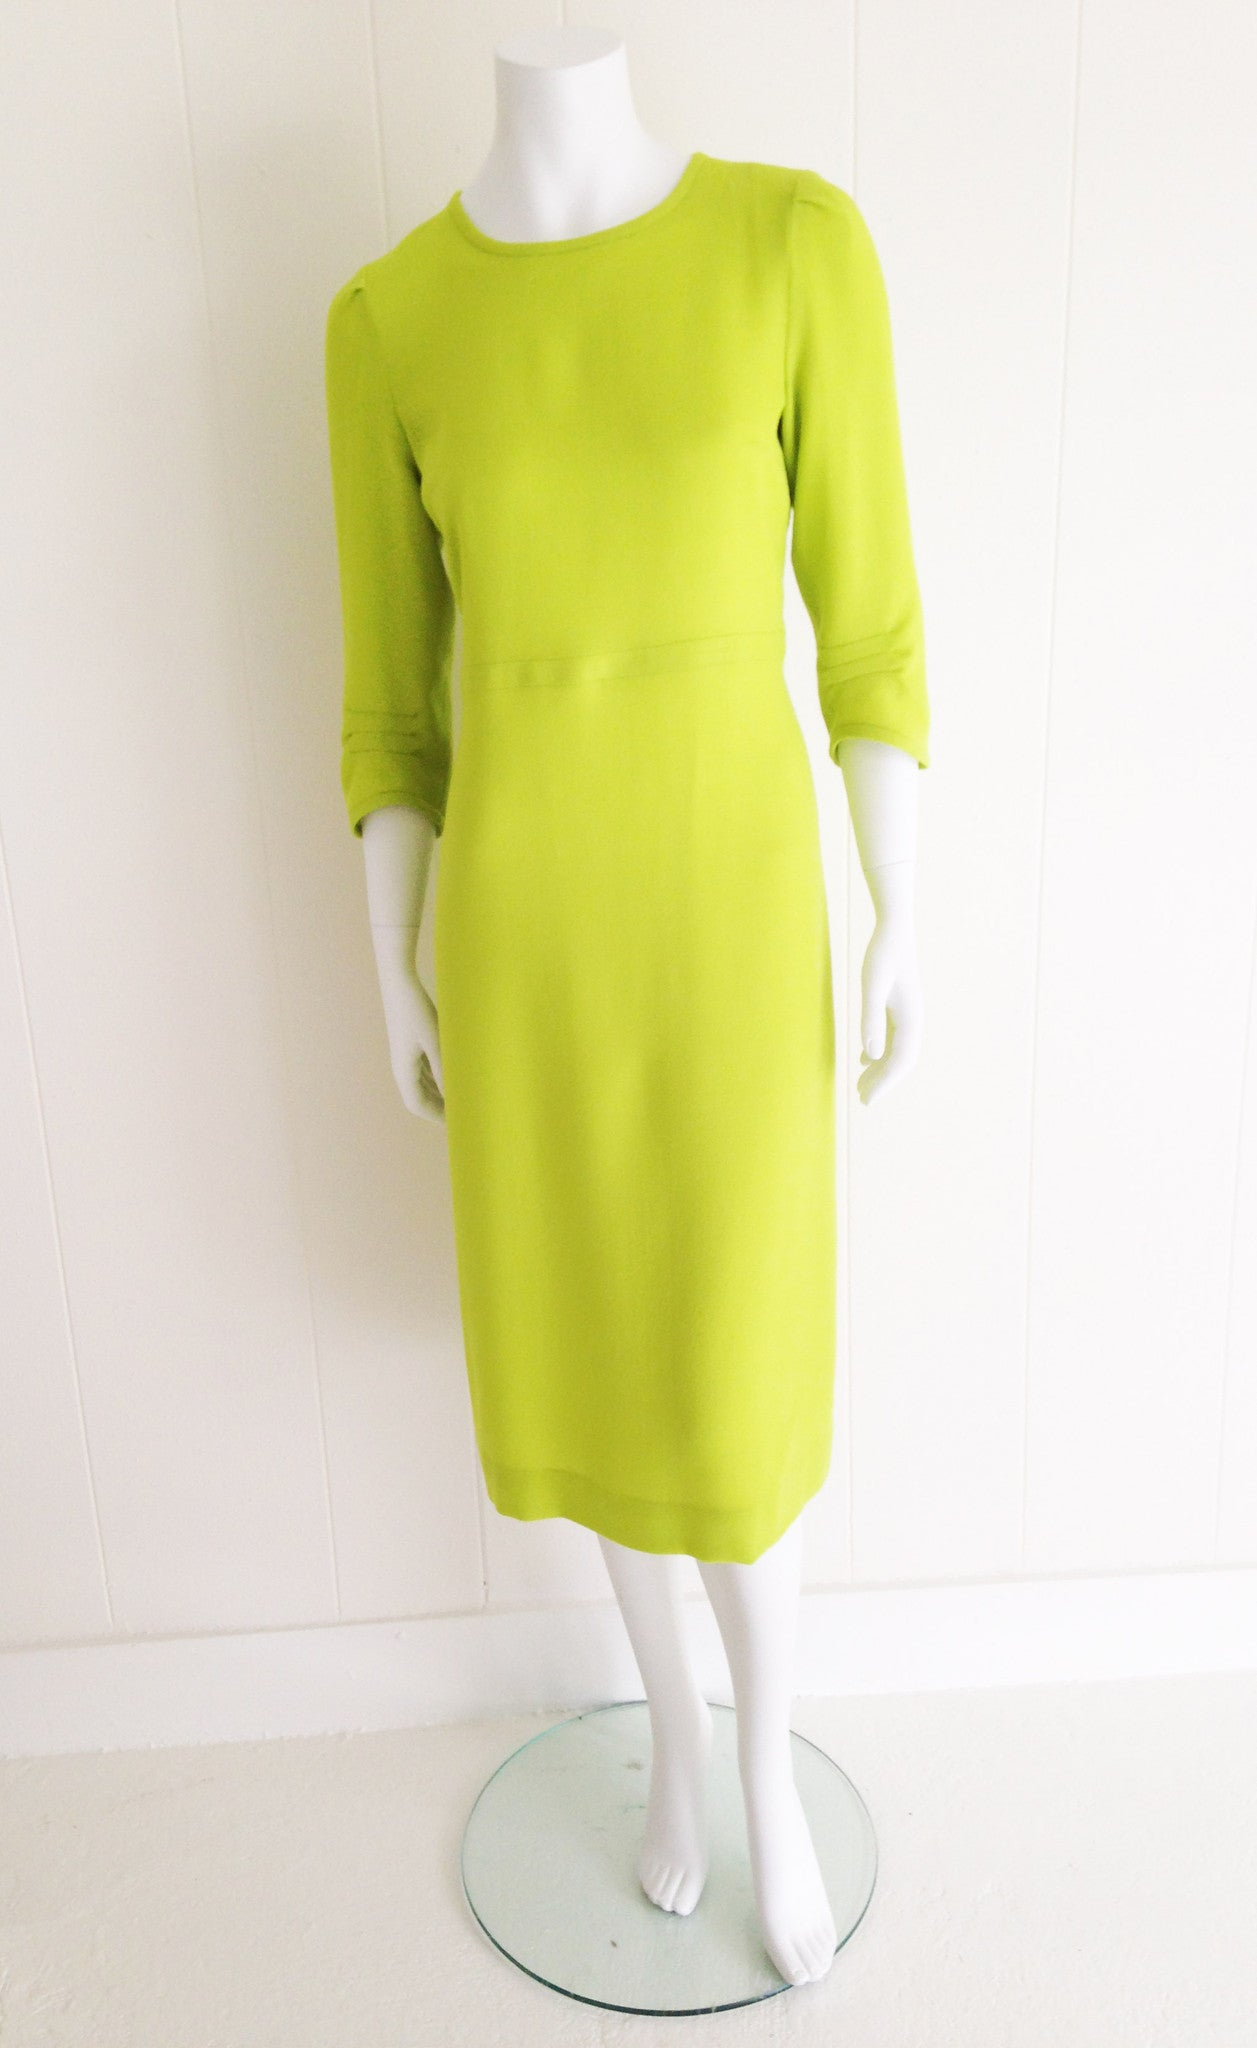 Vintage Empire Dress with Handstitch Detail